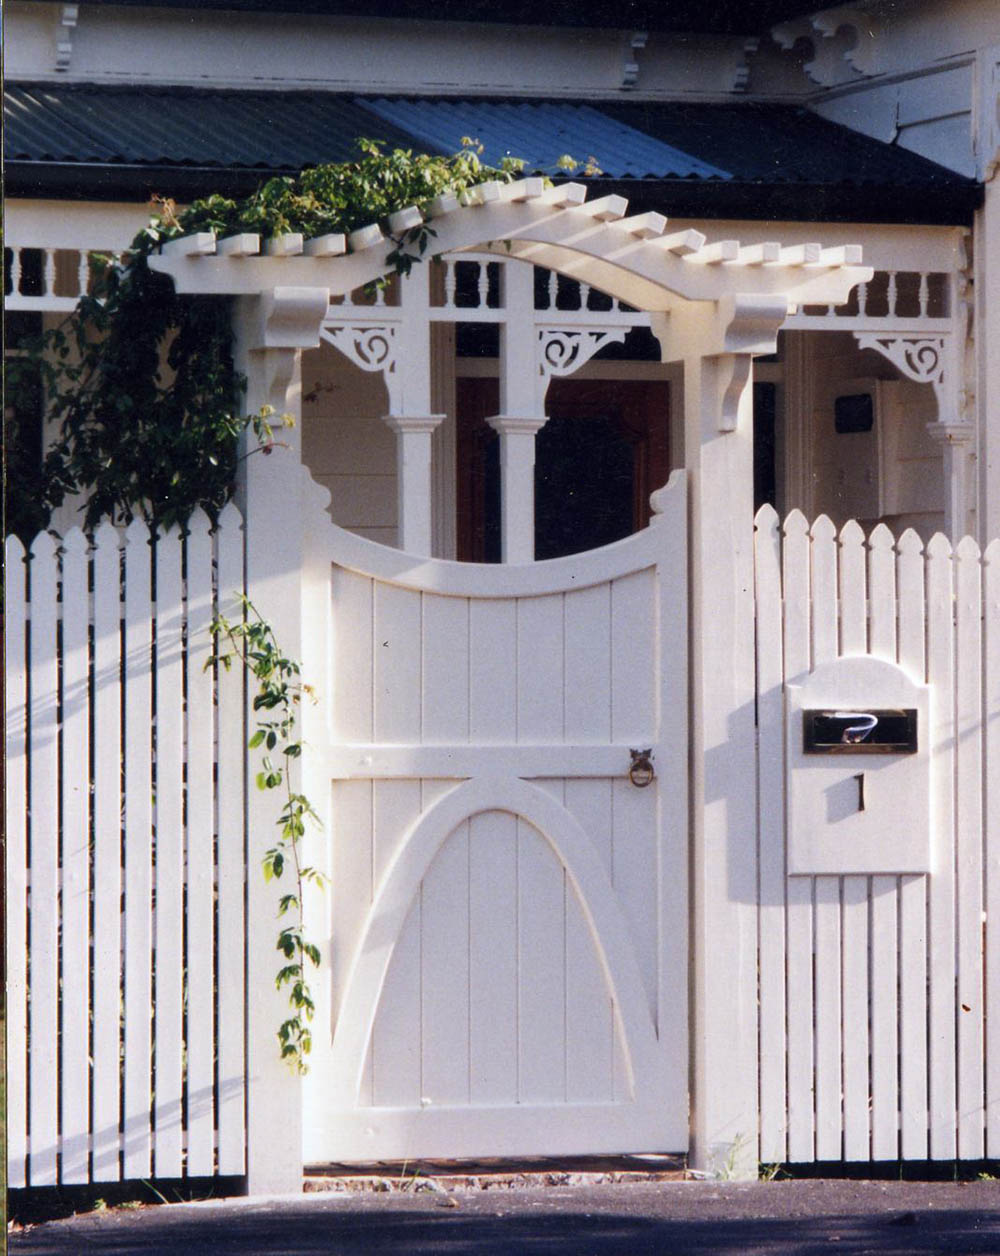 """#VI07_ Victoria under CornwallArch<br /><span>Victoria 07</span><br /><a href=""""/enquiry/?about=VI07_ Victoria under CornwallArch"""">ENQUIRE ABOUT THIS >></a><br /><a href=""""#""""  data-id=""""https://woodengates2-px.rtrk.co.nz/i/missingphotos/CornwallArch3.jpg"""" class=""""print-this-image"""">PRINT THIS IMAGE >></a><span class=""""ug-icon-favorite """" data-id=""""2511"""" id=""""spanFavorite2511"""" title=""""Add to My list""""></span>"""